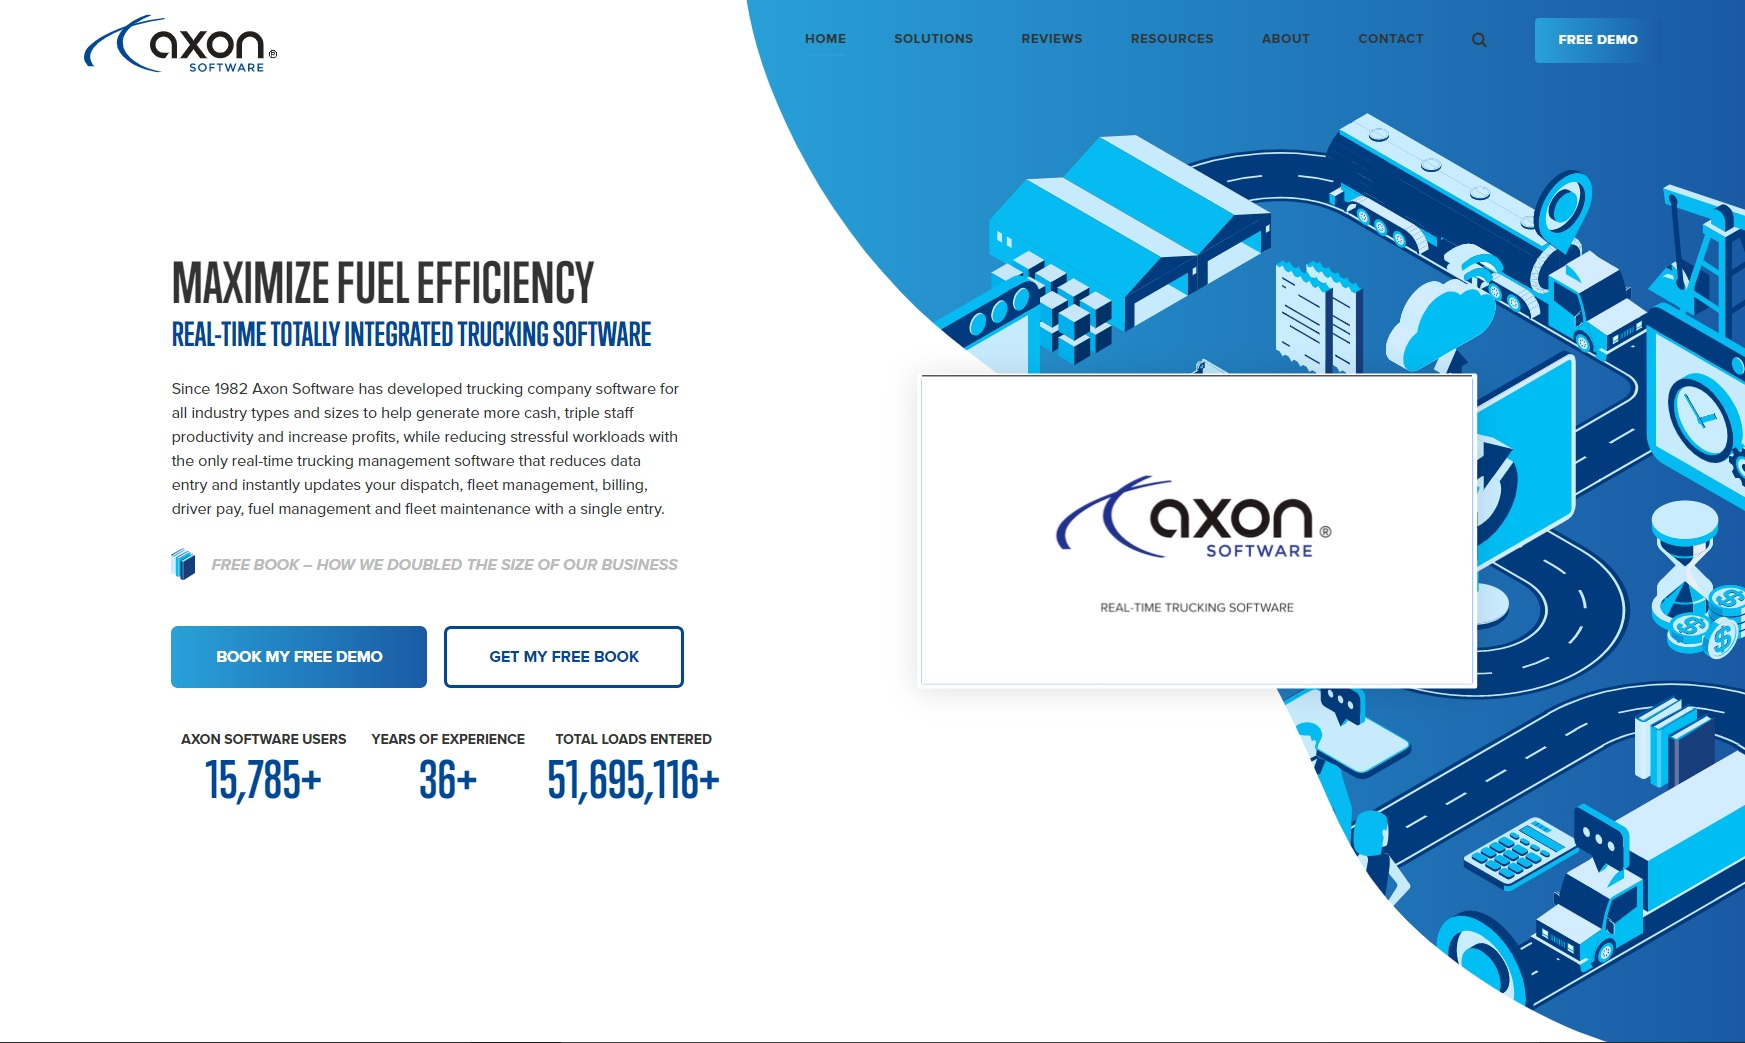 Axon Software: Real-Time Trucking Software